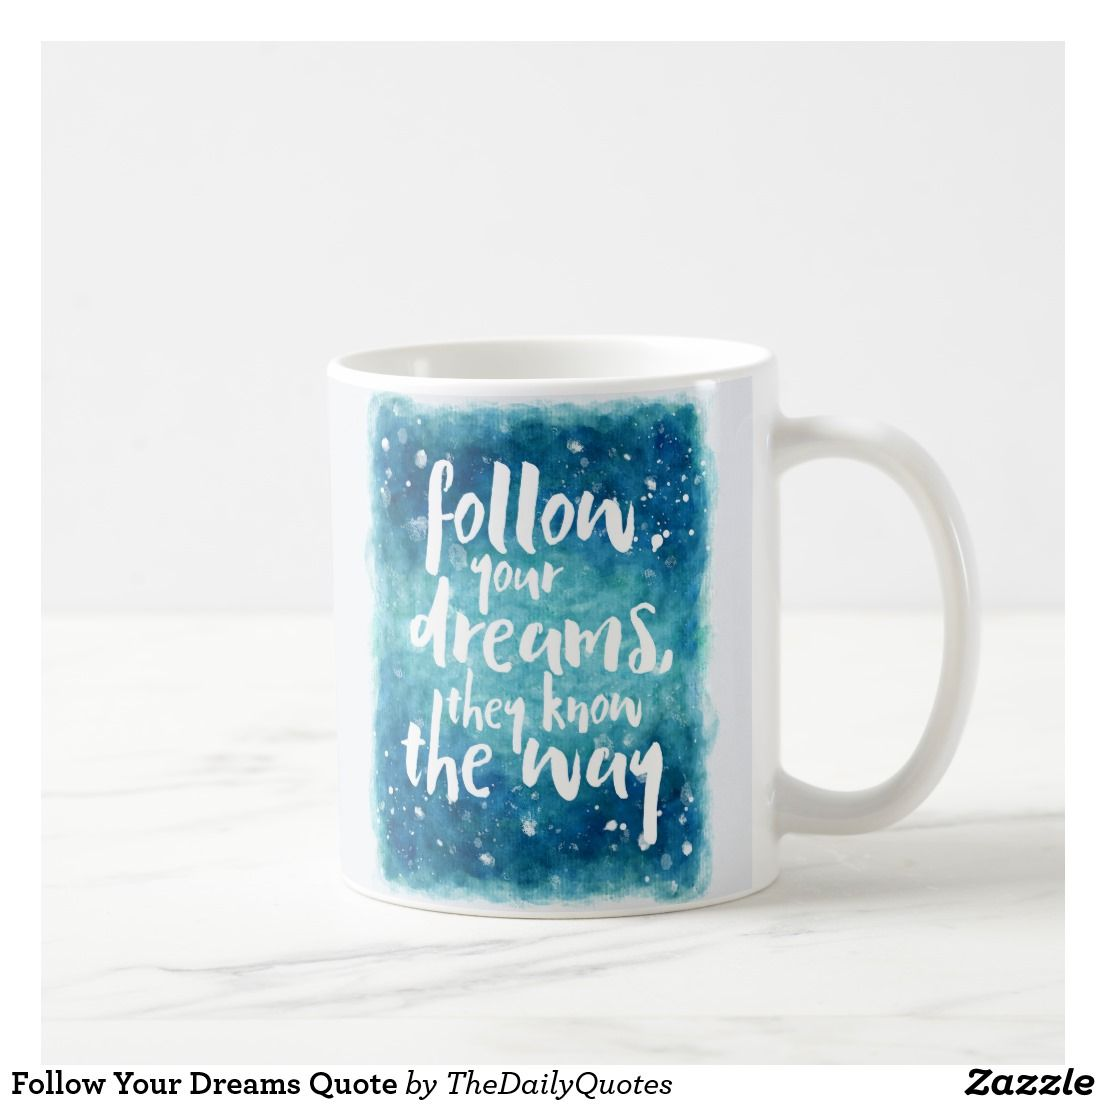 Follow Your Dreams Quote Coffee Mug Zazzle Com Follow Your Dreams Quotes Dream Quotes Coffee Quotes